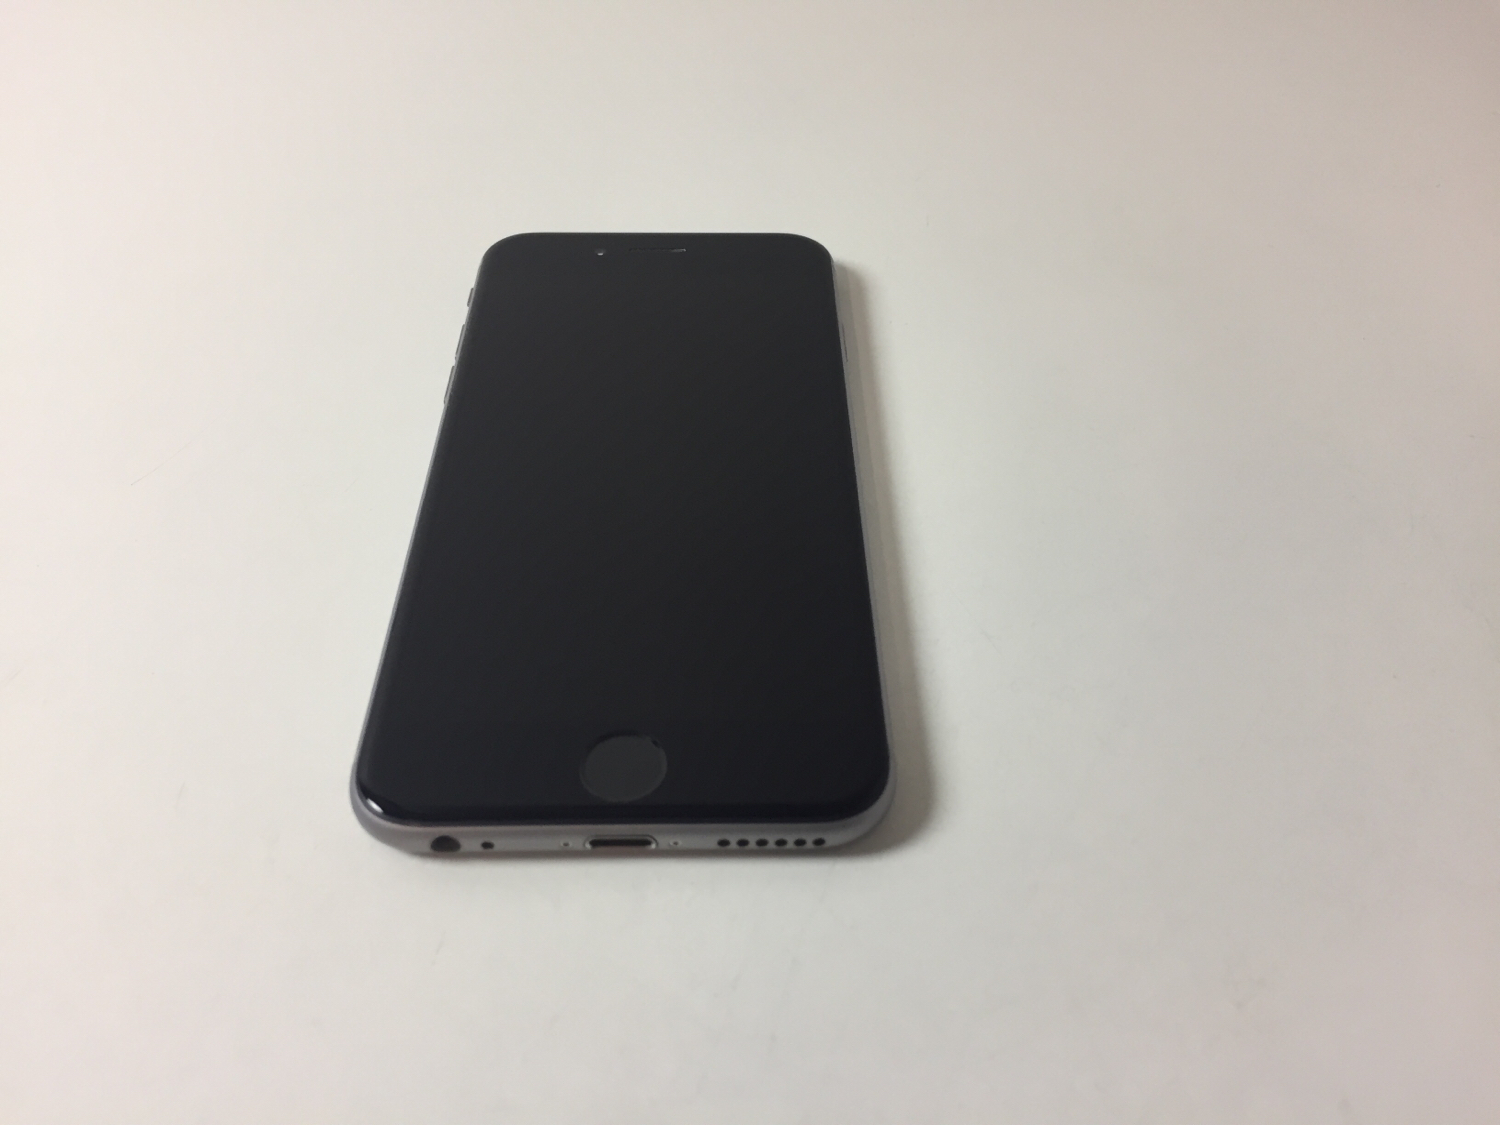 iPhone 6 16GB, 16GB, Gray, Afbeelding 1